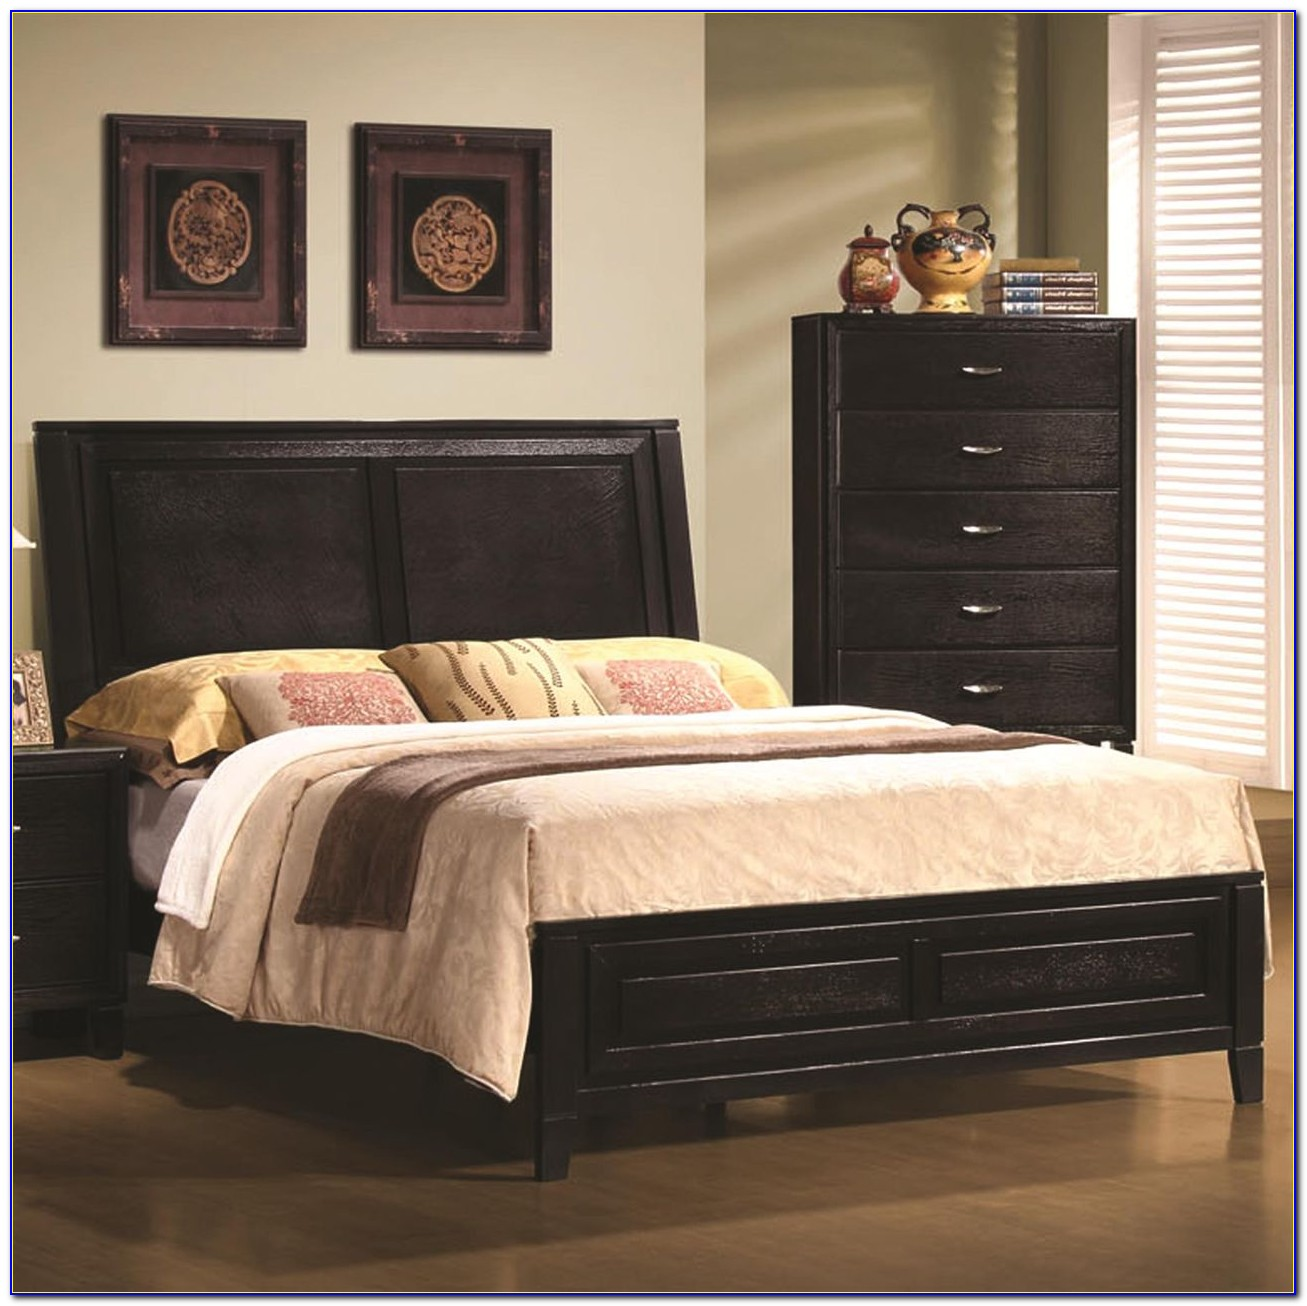 Upholstered Headboard And Footboard Beds